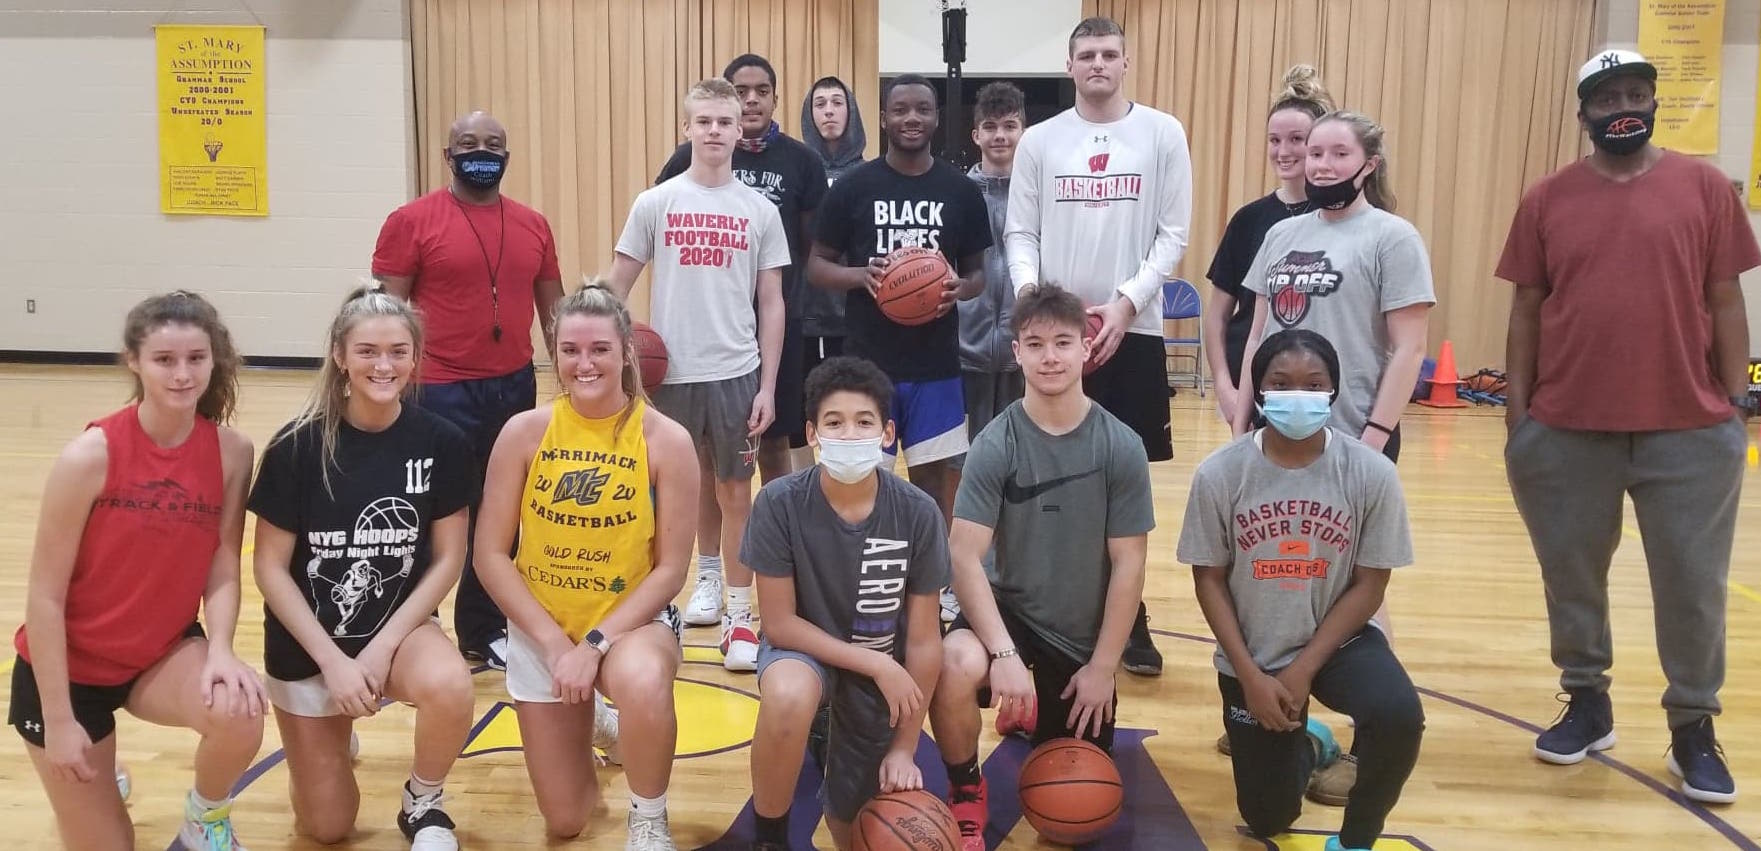 LOCAL HIGH SCHOOL, COLLEGE PLAYERS APPRECIATIVE FOR OPPORTUNITY TO GET COURT TIME, THANKS TO VALLEY-BASED AAU PROGRAM